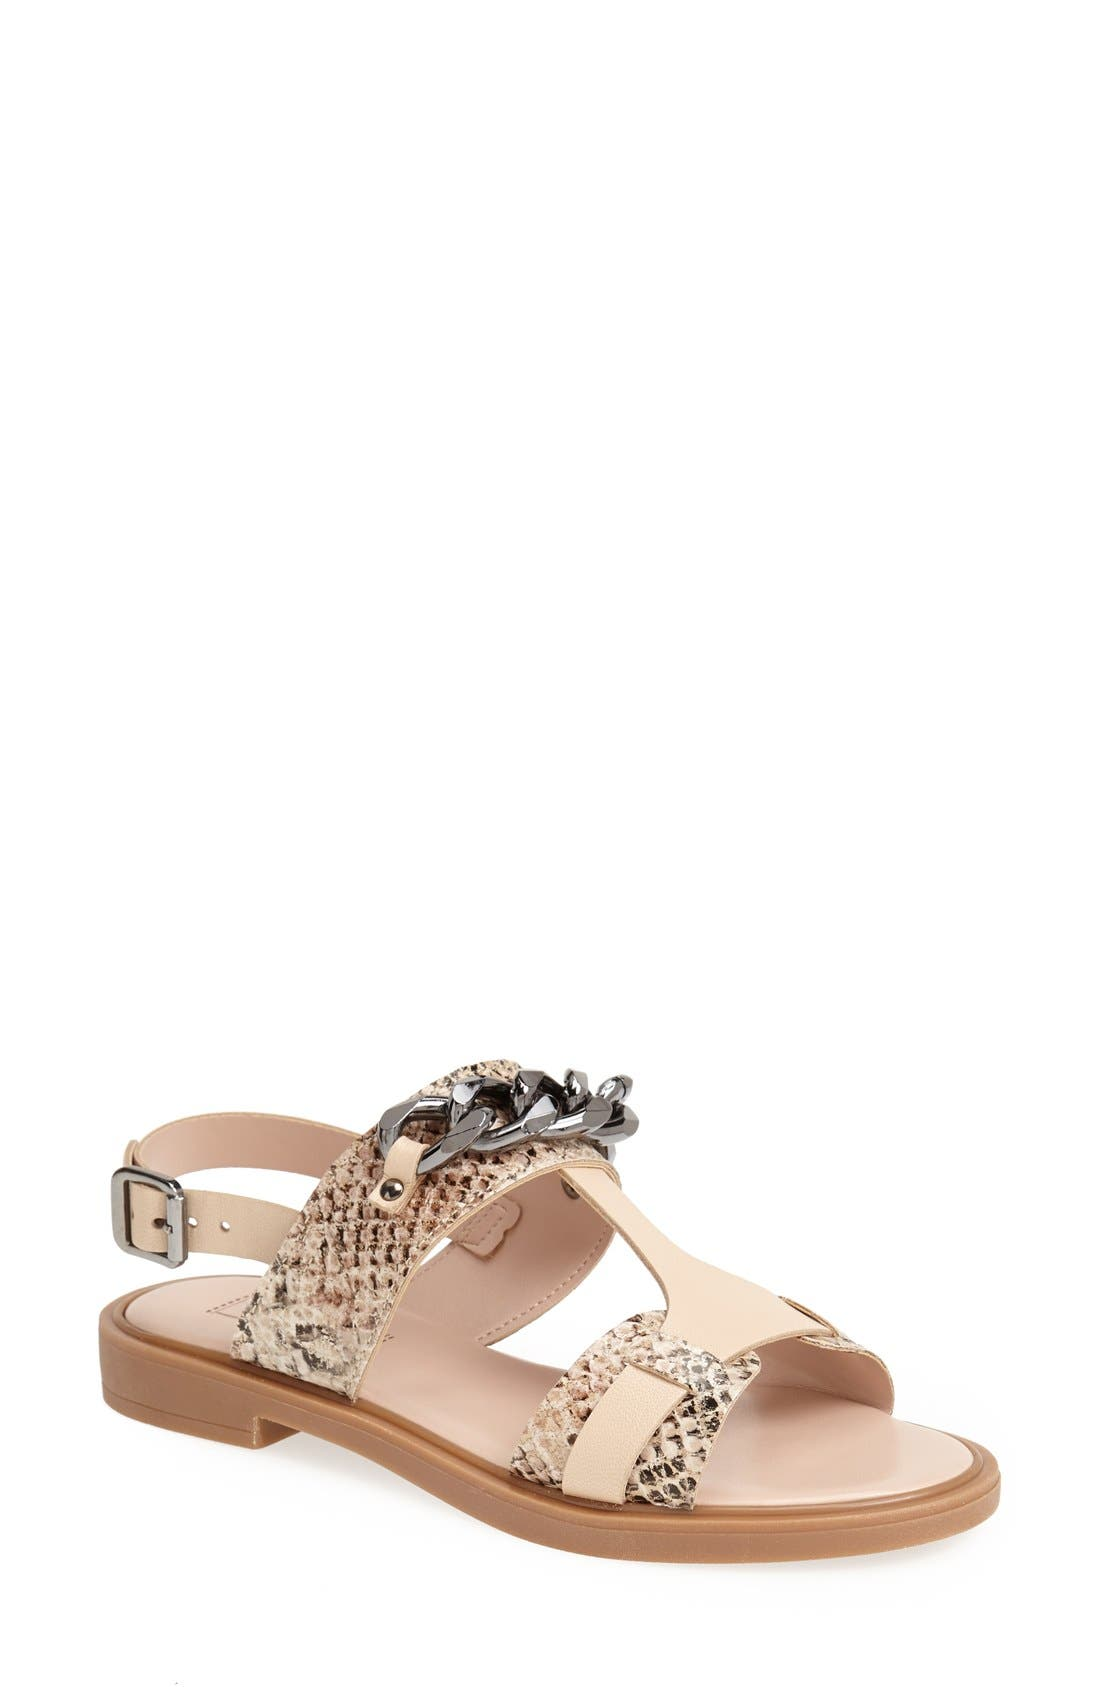 Alternate Image 1 Selected - Topshop 'Fly Chain' T-Strap Sandal (Women)